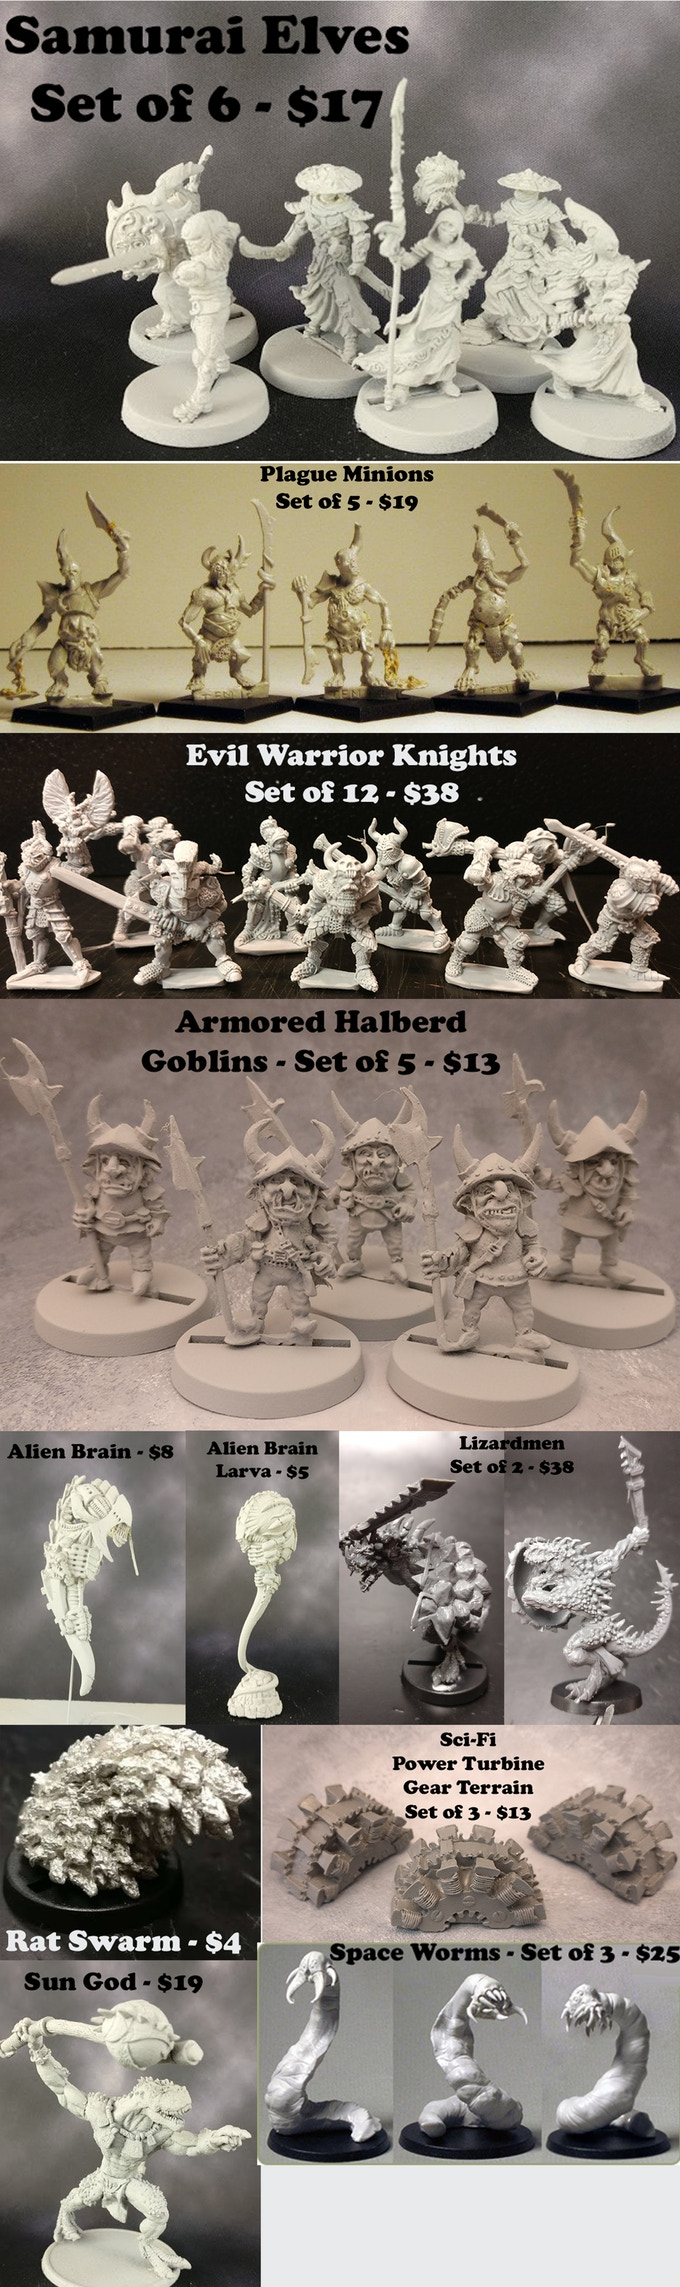 The Lost Minis #2 - Impact Miniatures